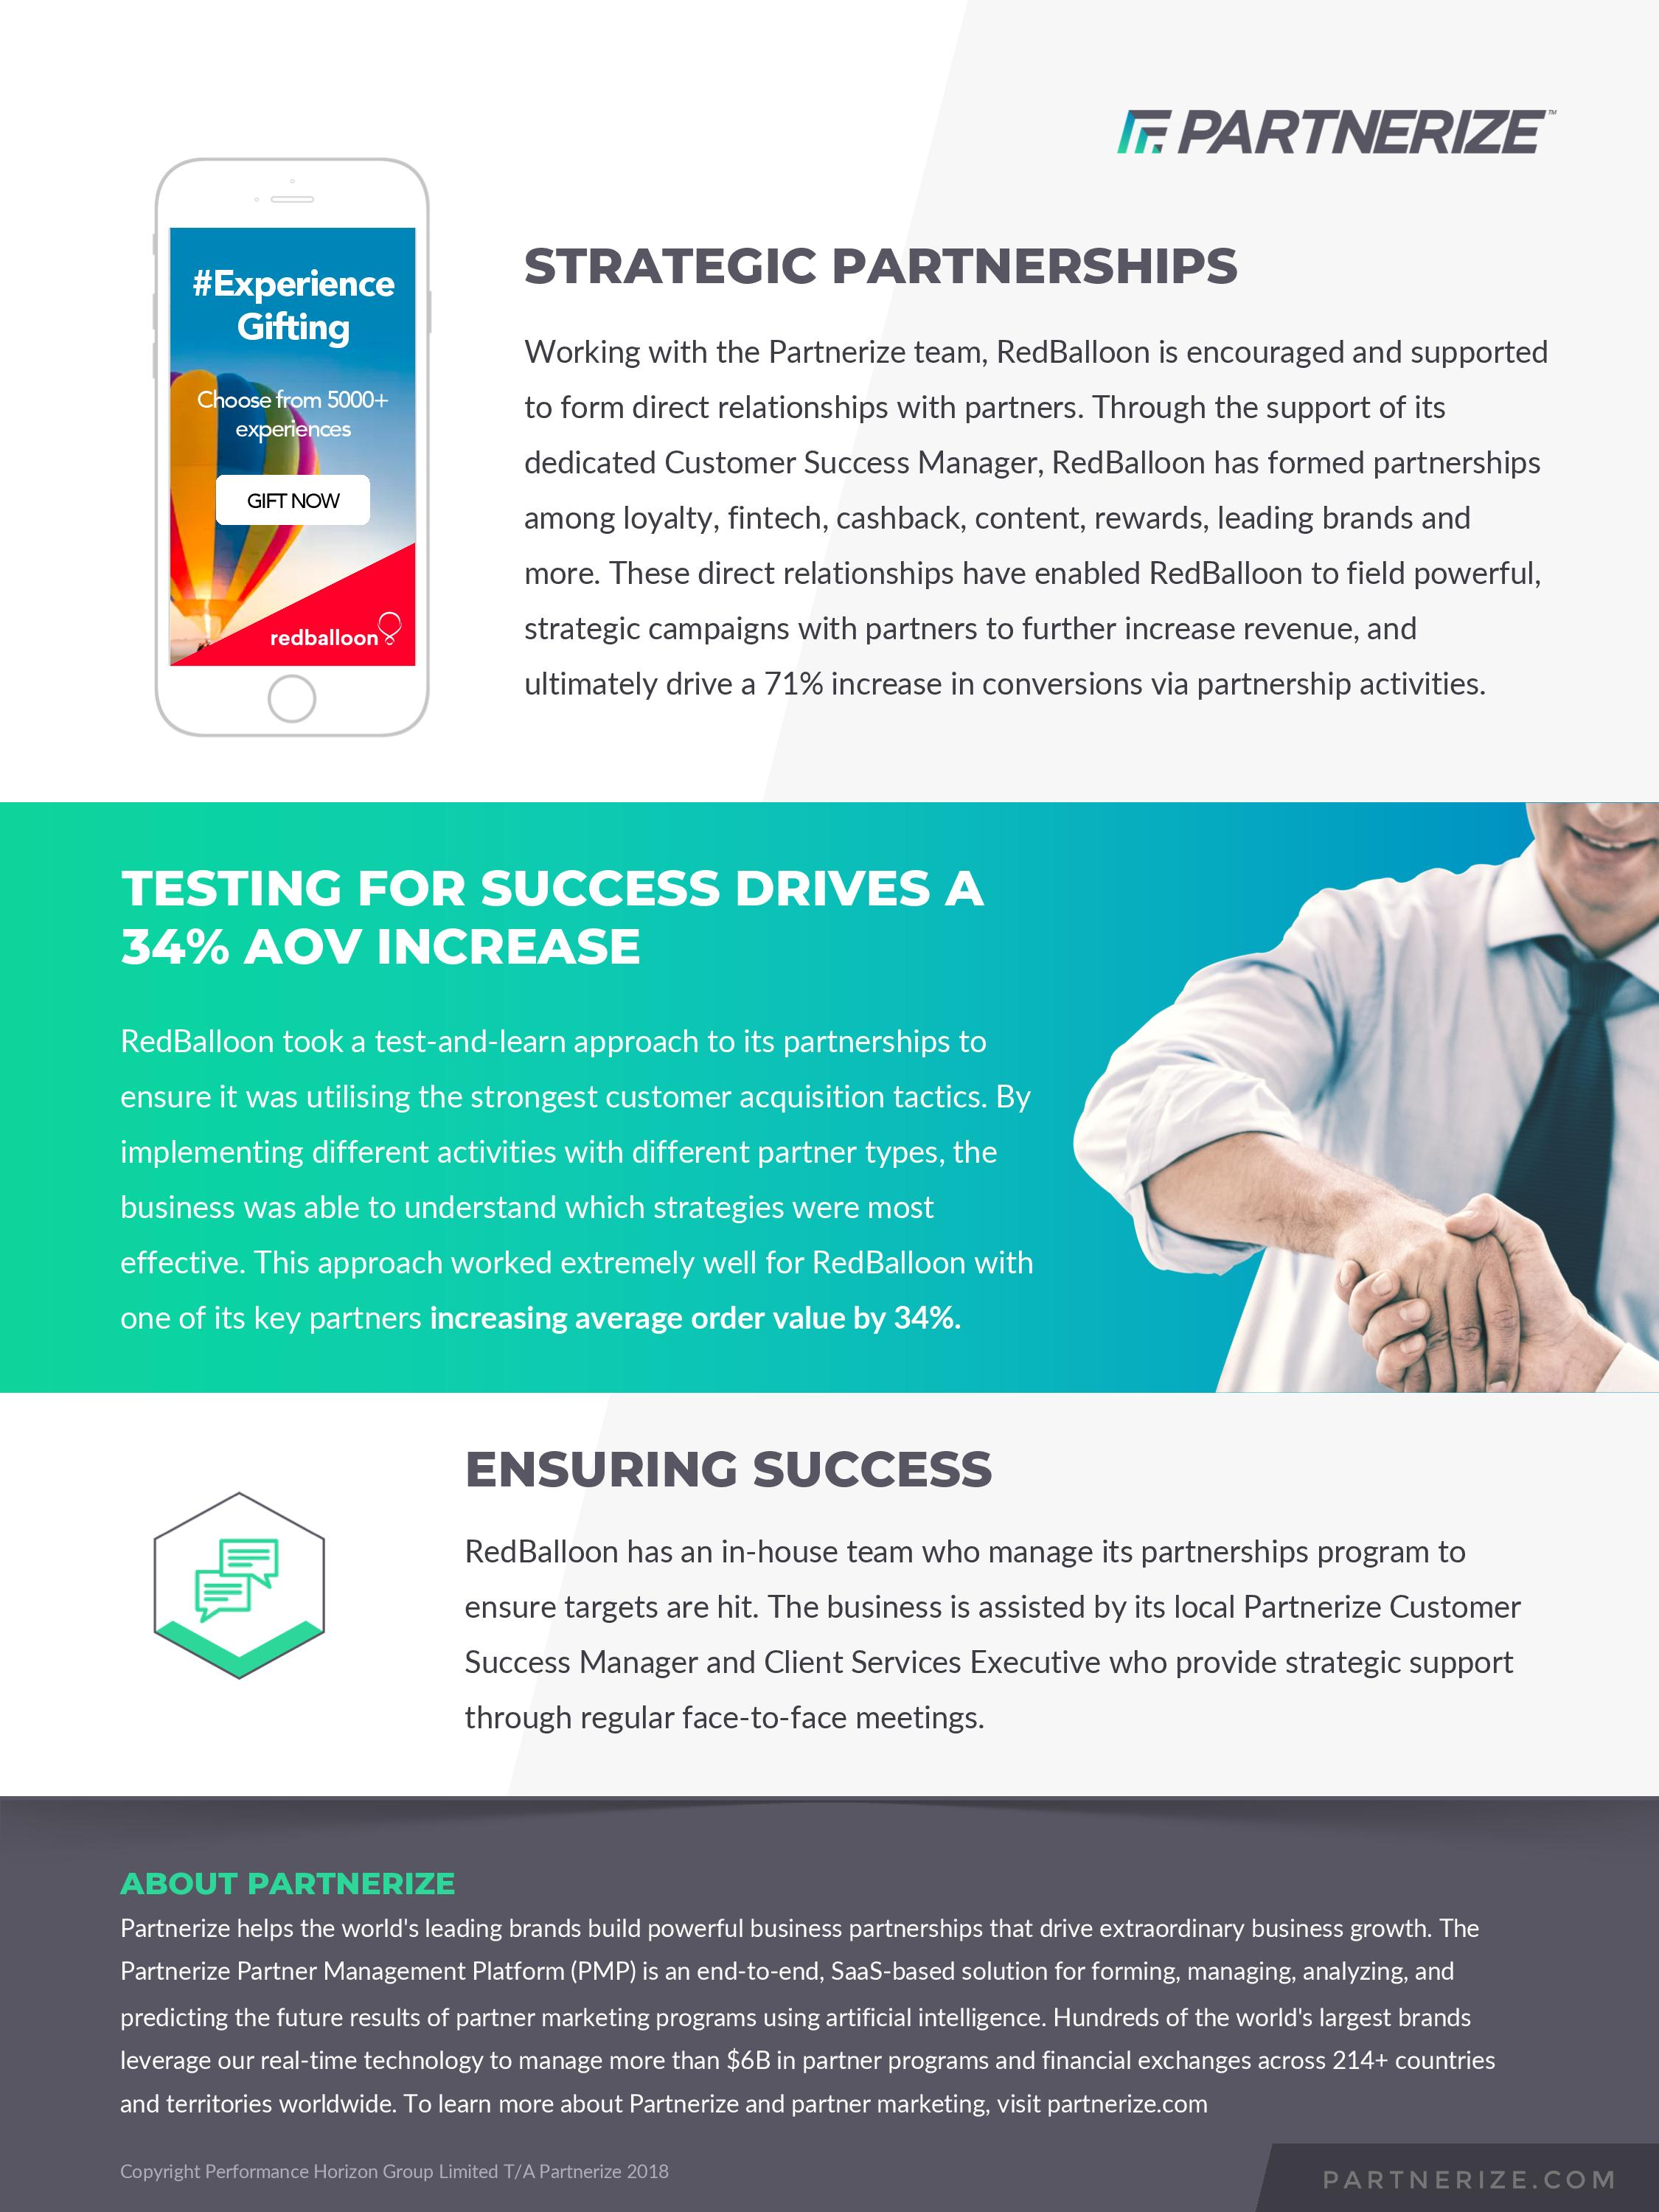 Partnerize_RedBalloon_Case_Study-page-002